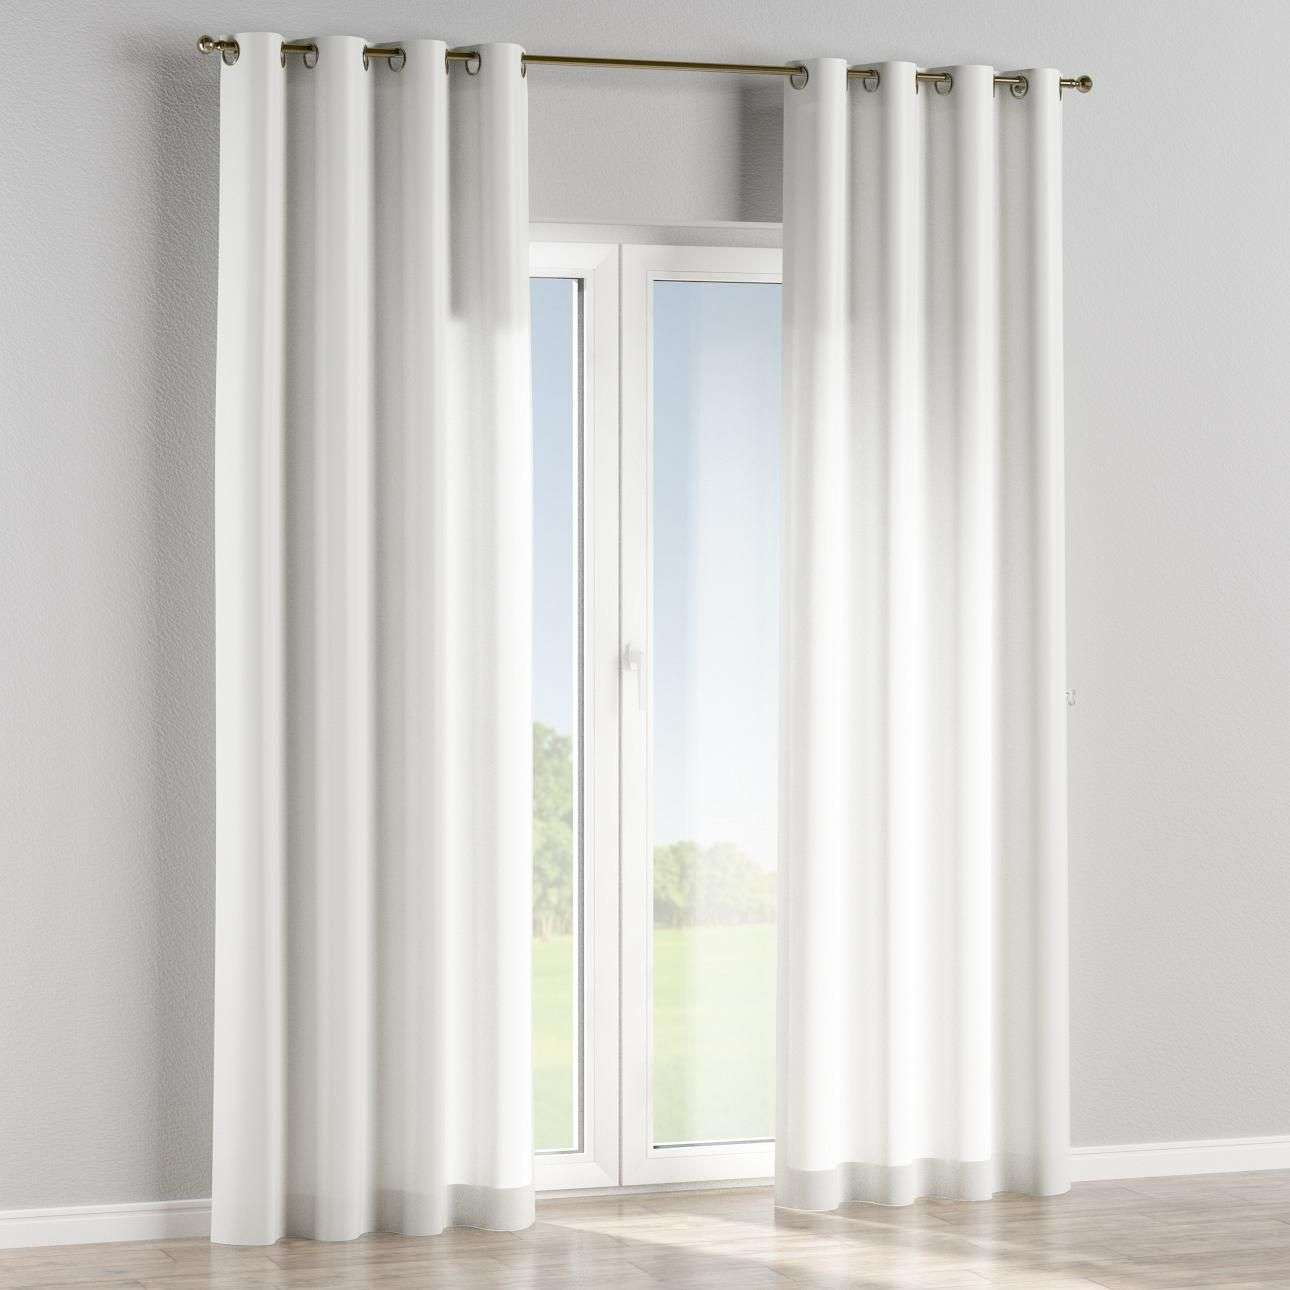 Eyelet lined curtains in collection Jupiter, fabric: 127-02